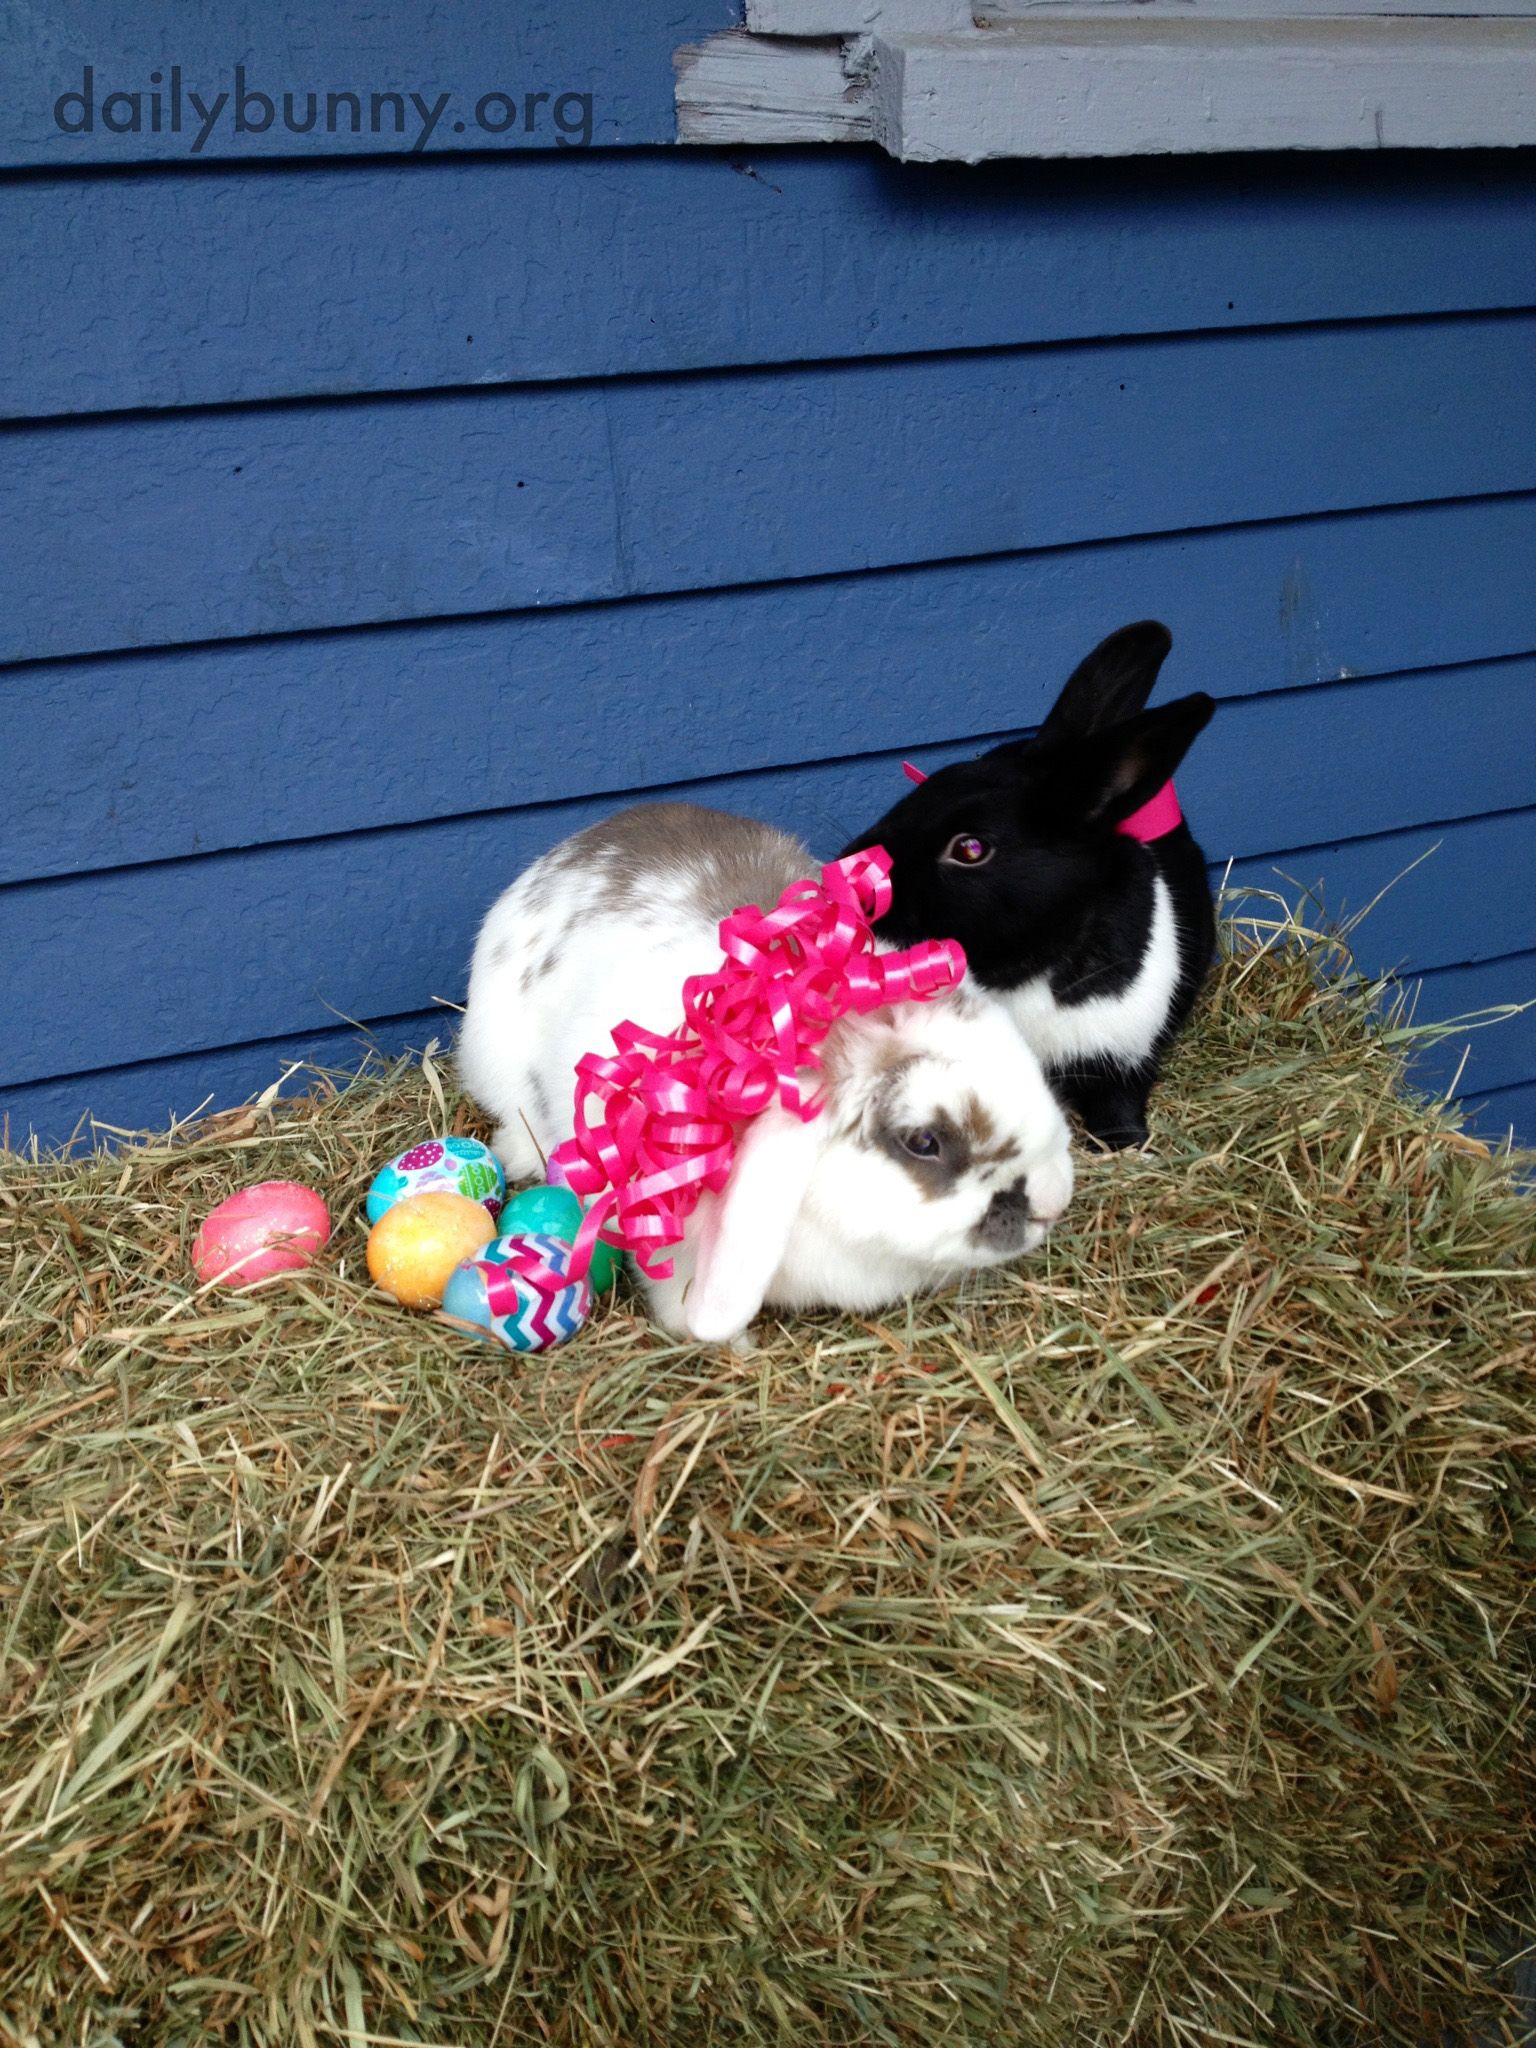 The Daily Bunny's Easter 2014 Mega-Post! 11